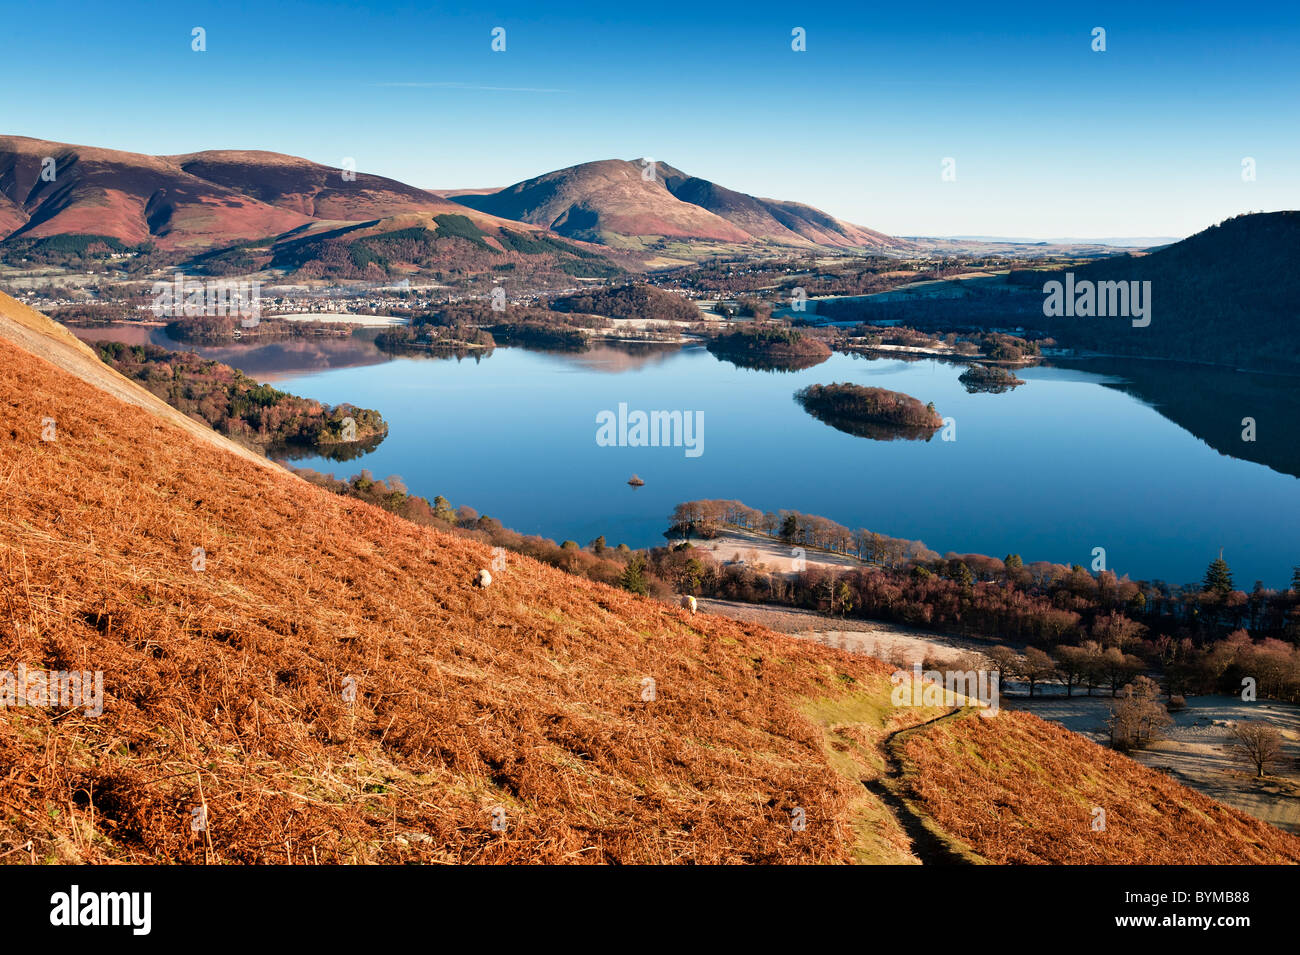 Derwent Water and Blencathra viewed from a path leading up Catbells. - Stock Image